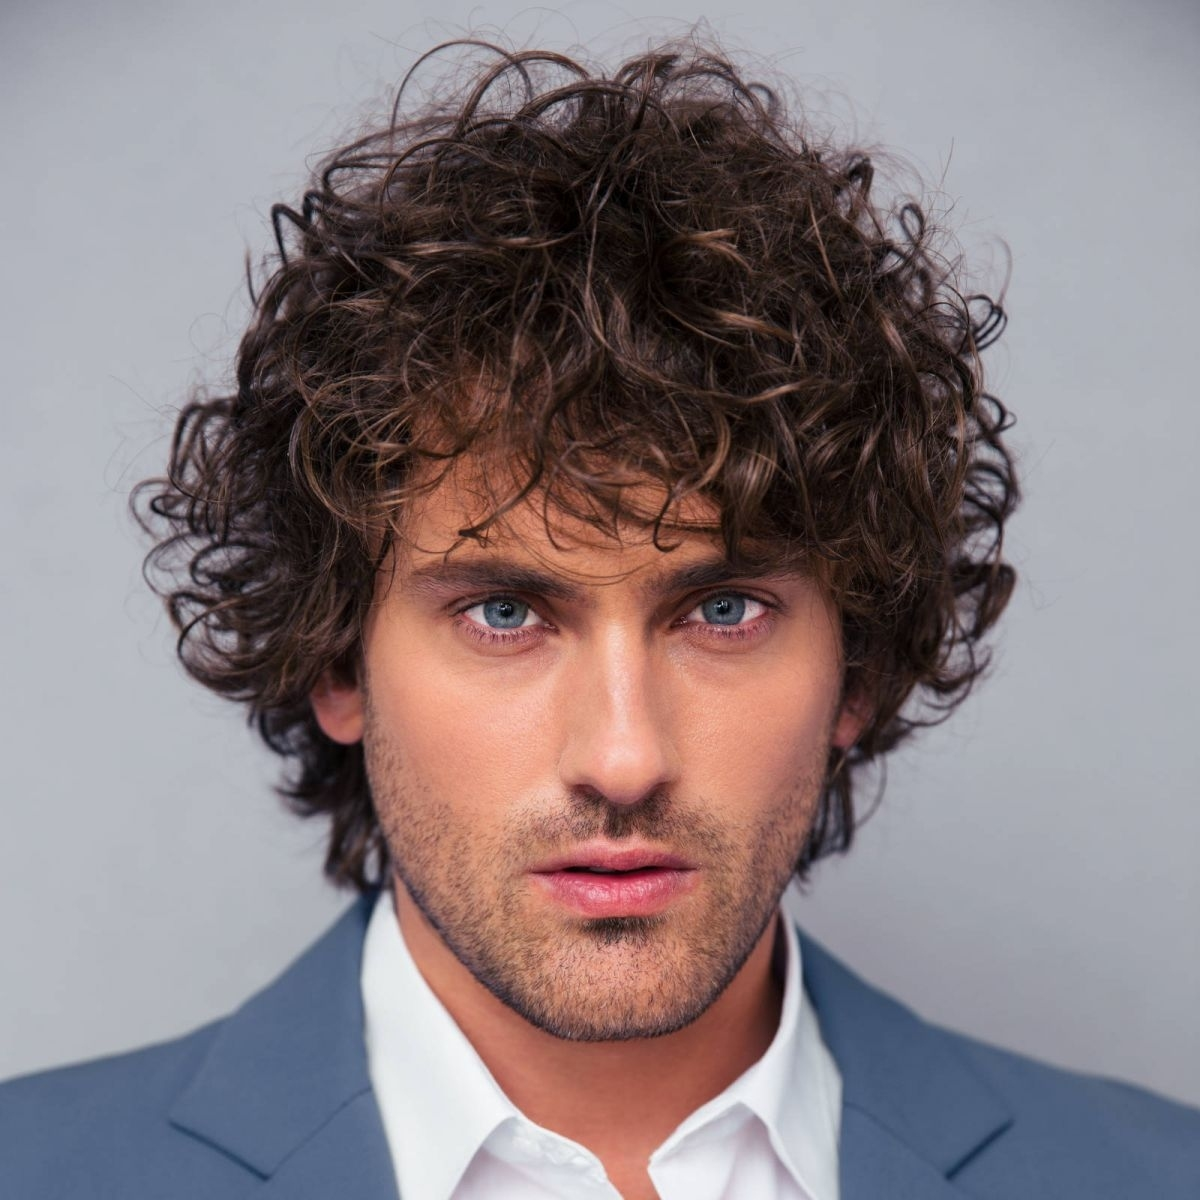 40 Modern Men's Hairstyles For Curly Hair (That Will Change Your Look) throughout Haircut For Frizzy Hair Male